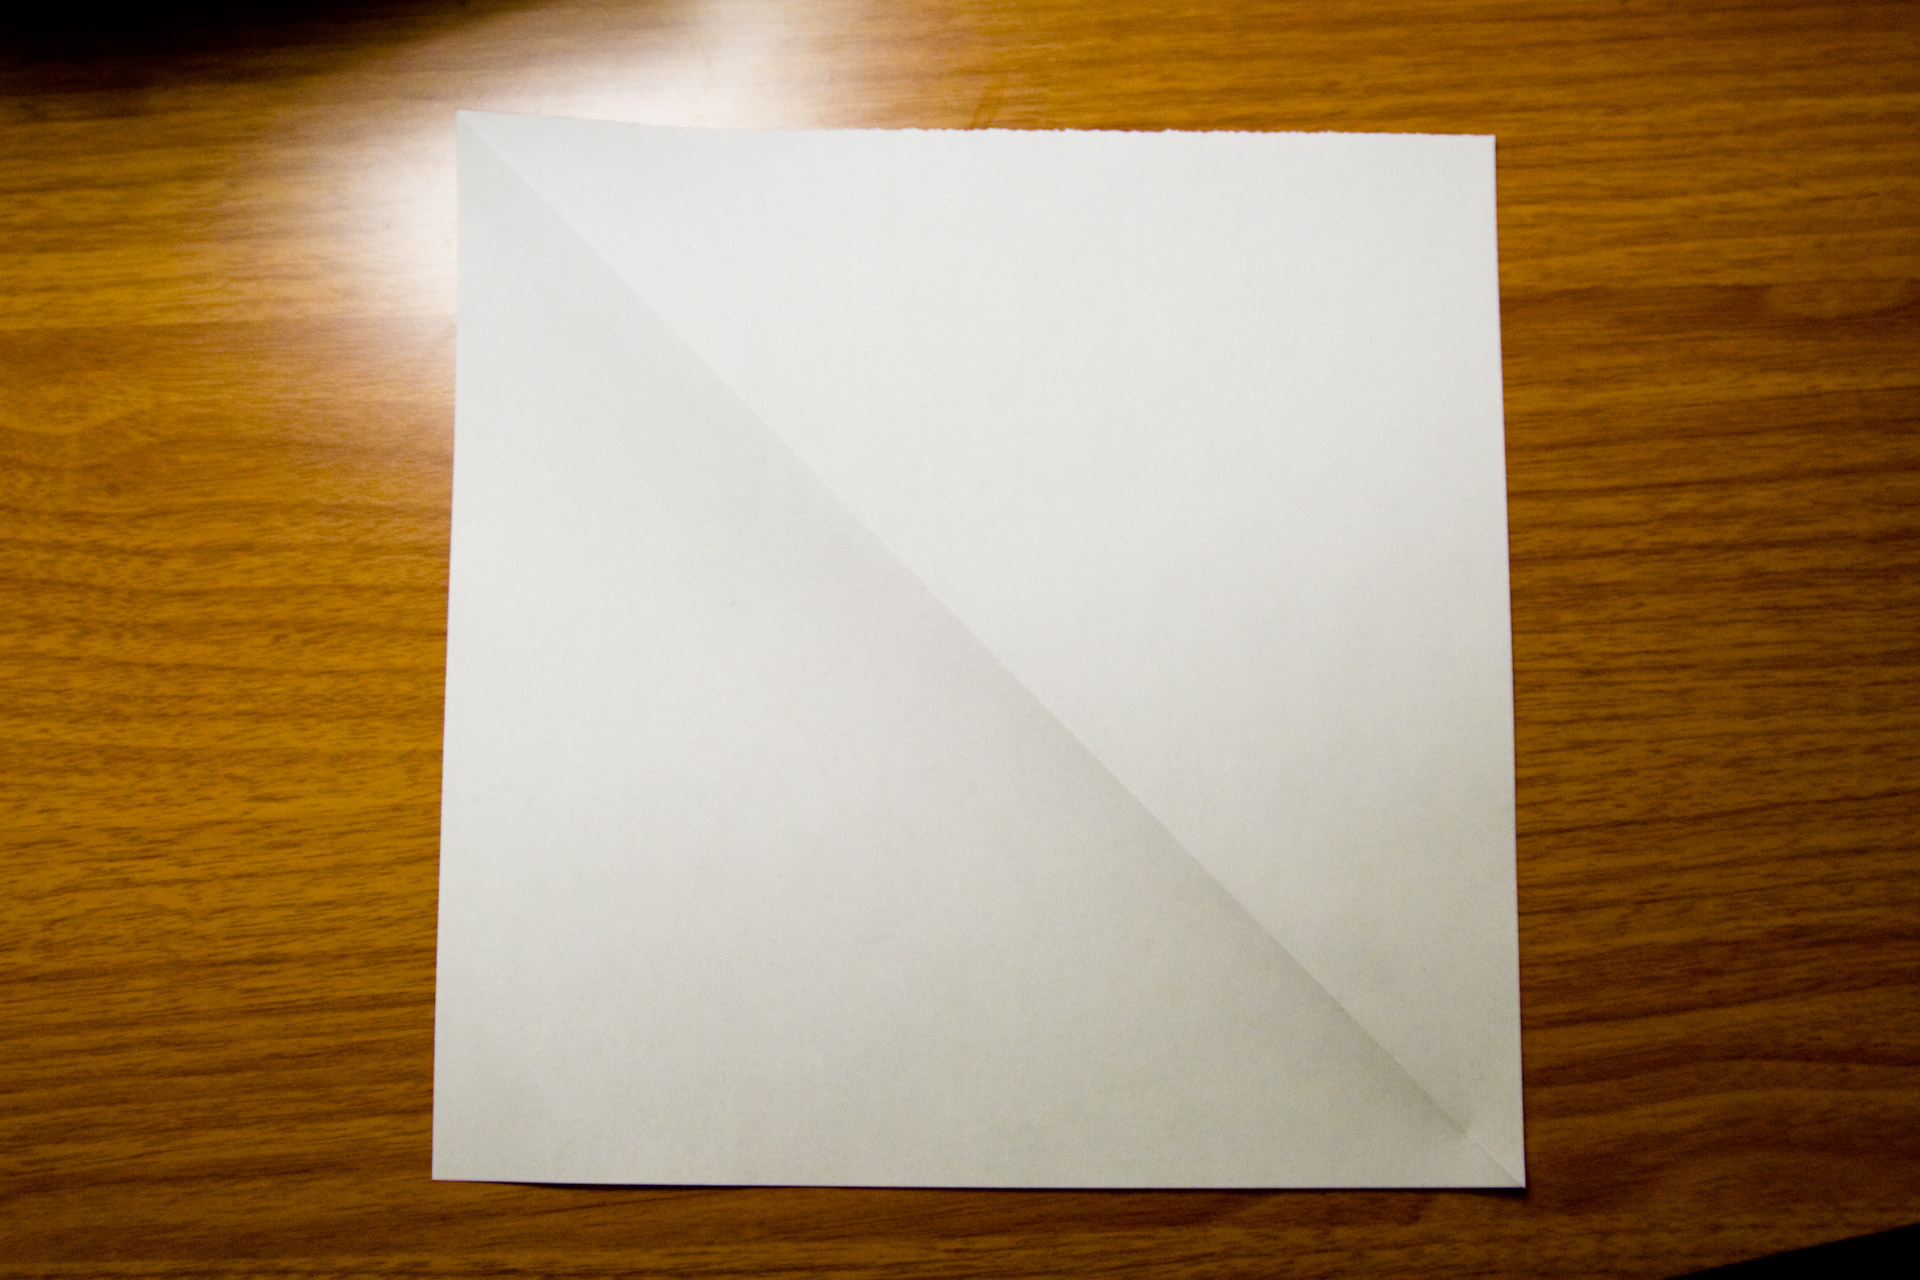 A square piece of paper on a wooden table.